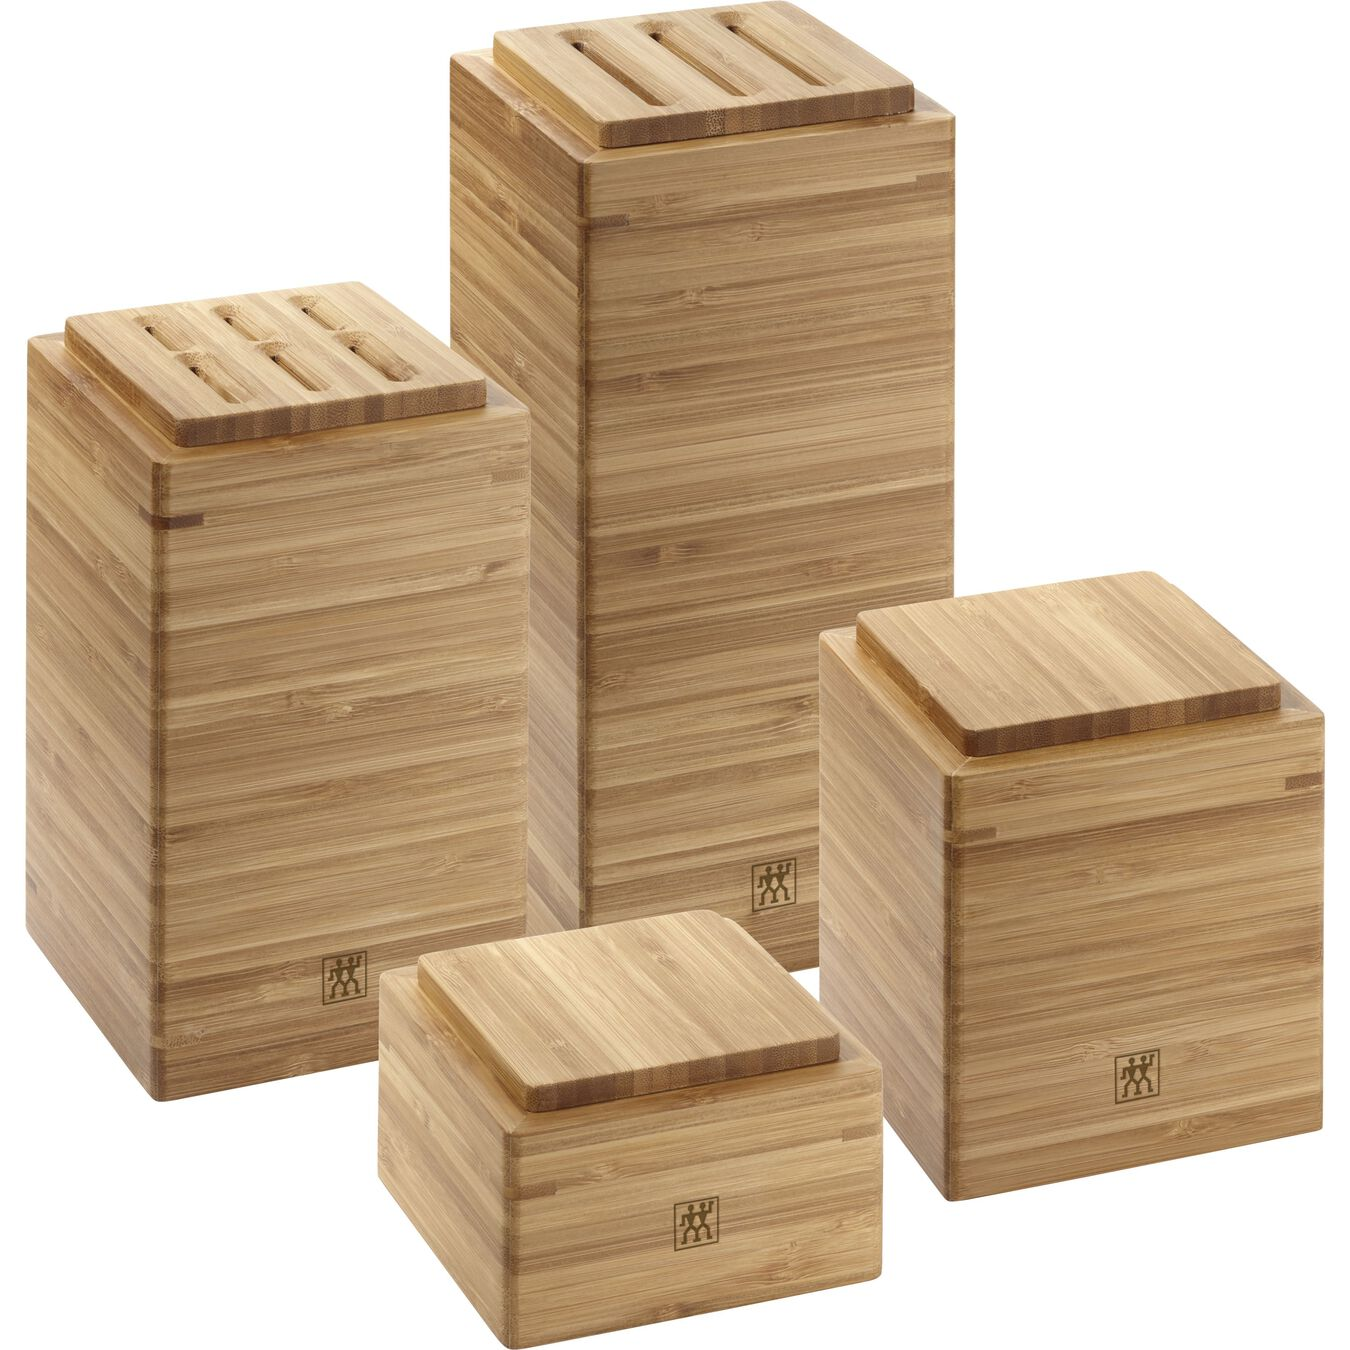 Bamboo Storage Box - Set of 4,,large 1